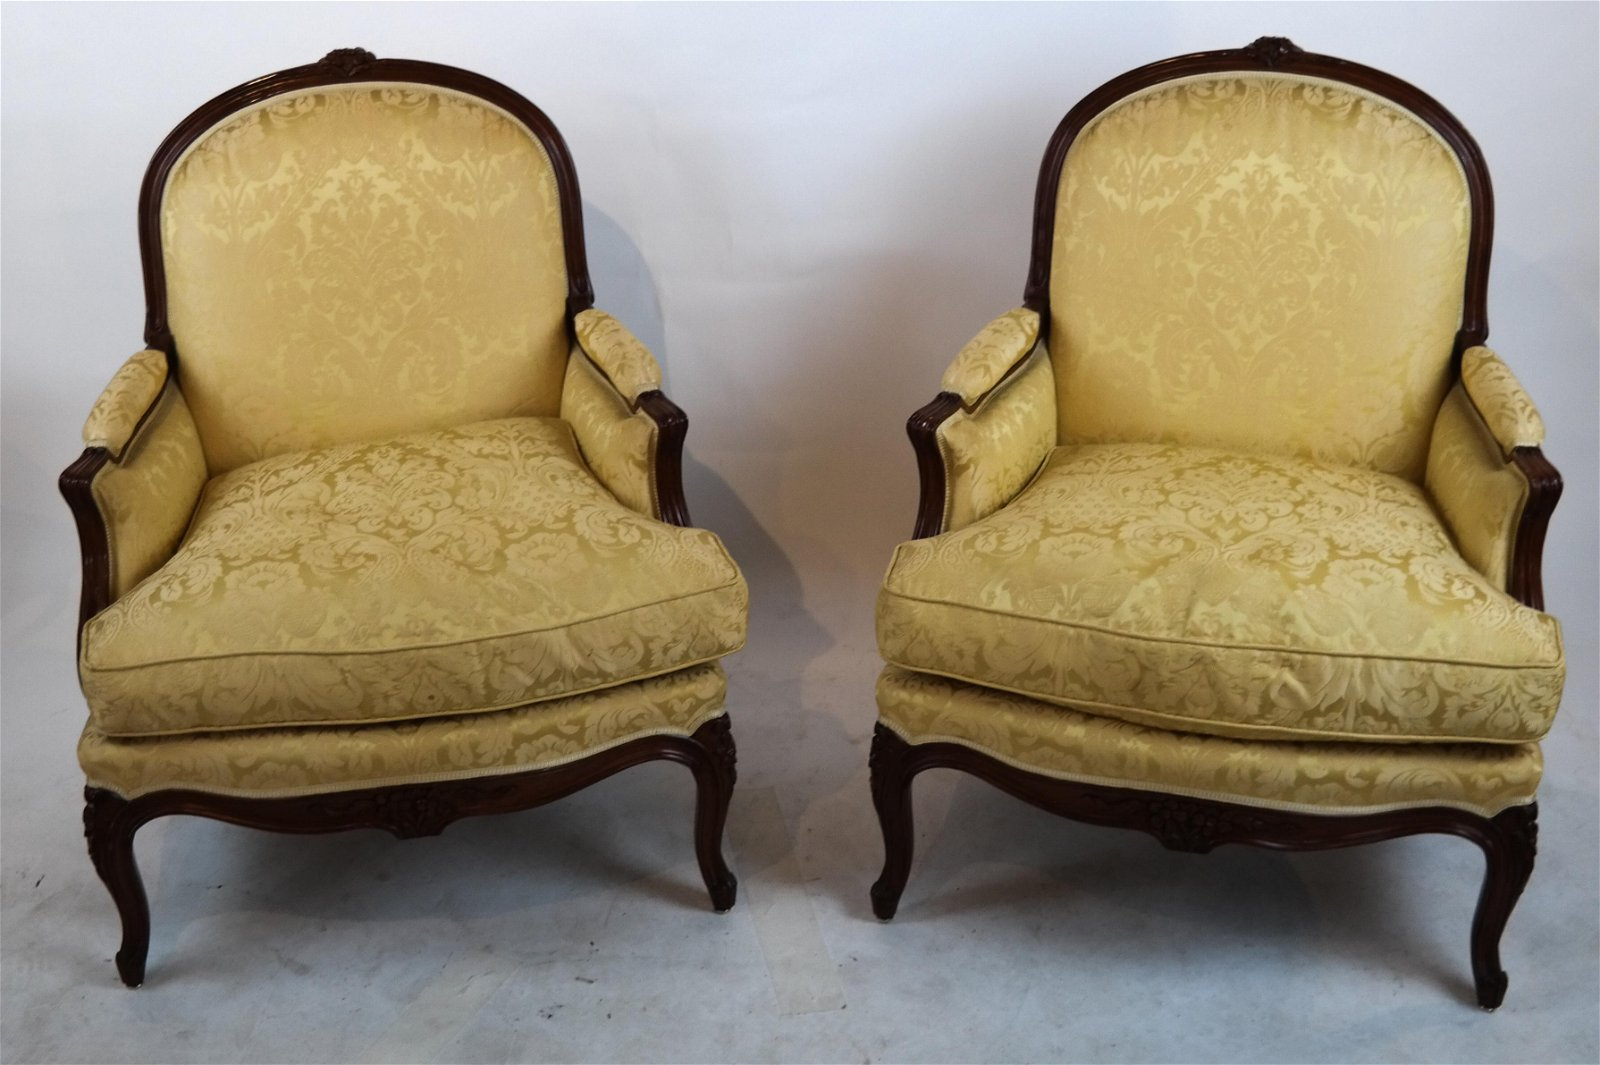 Pair of French Gold Upholstered Bergeres